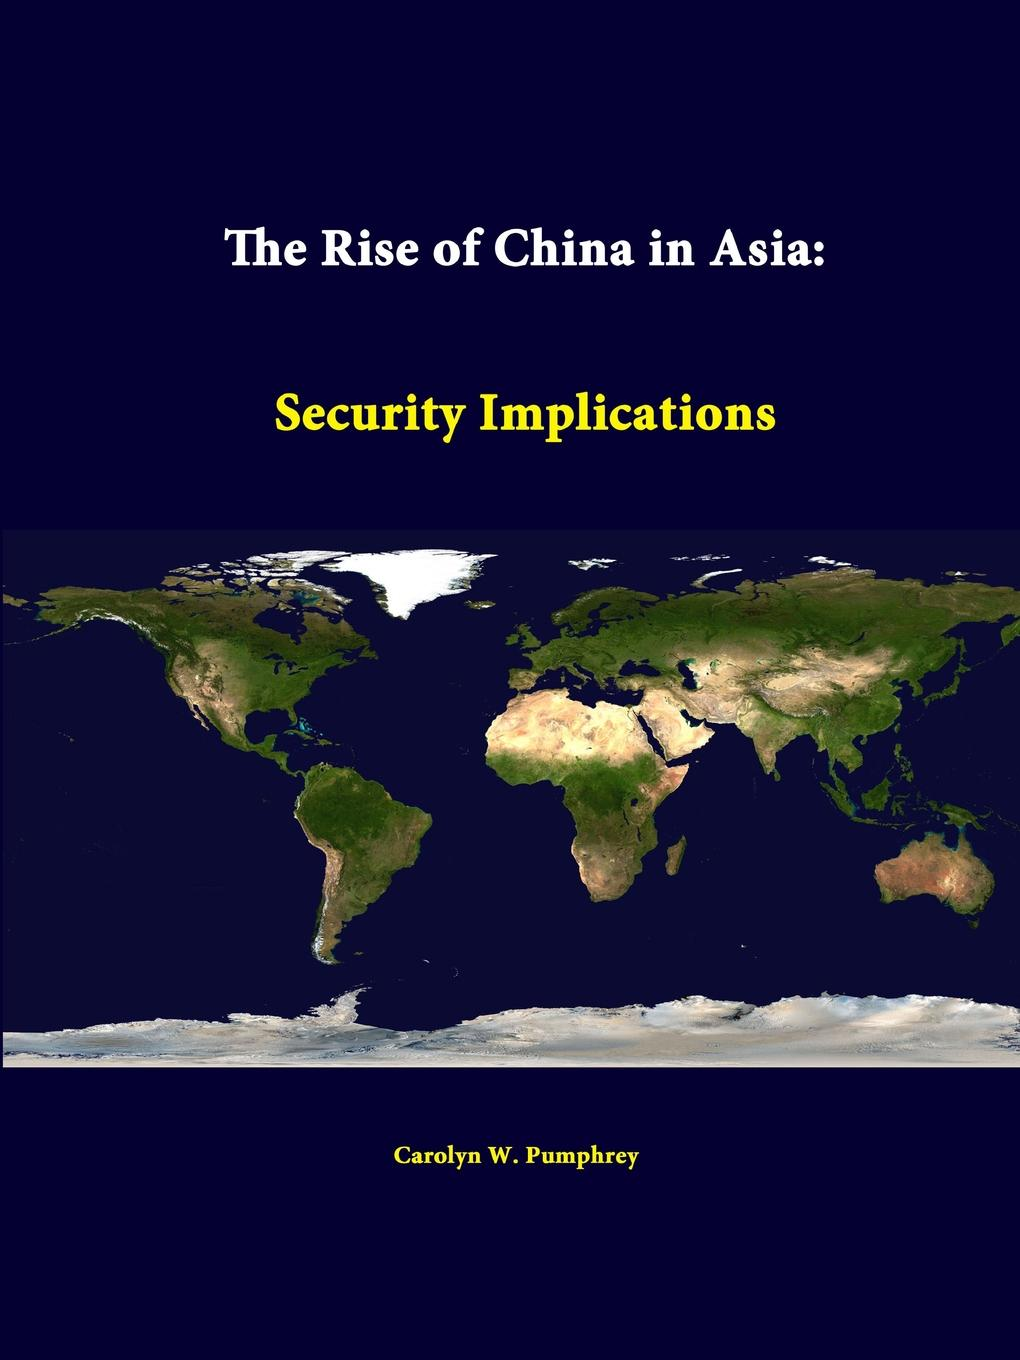 Carolyn W. Pumphrey, Strategic Studies Institute The Rise of China in Asia. Security Implications strategic studies institute samuel s investigation north korean foreign relations in the post cold war world